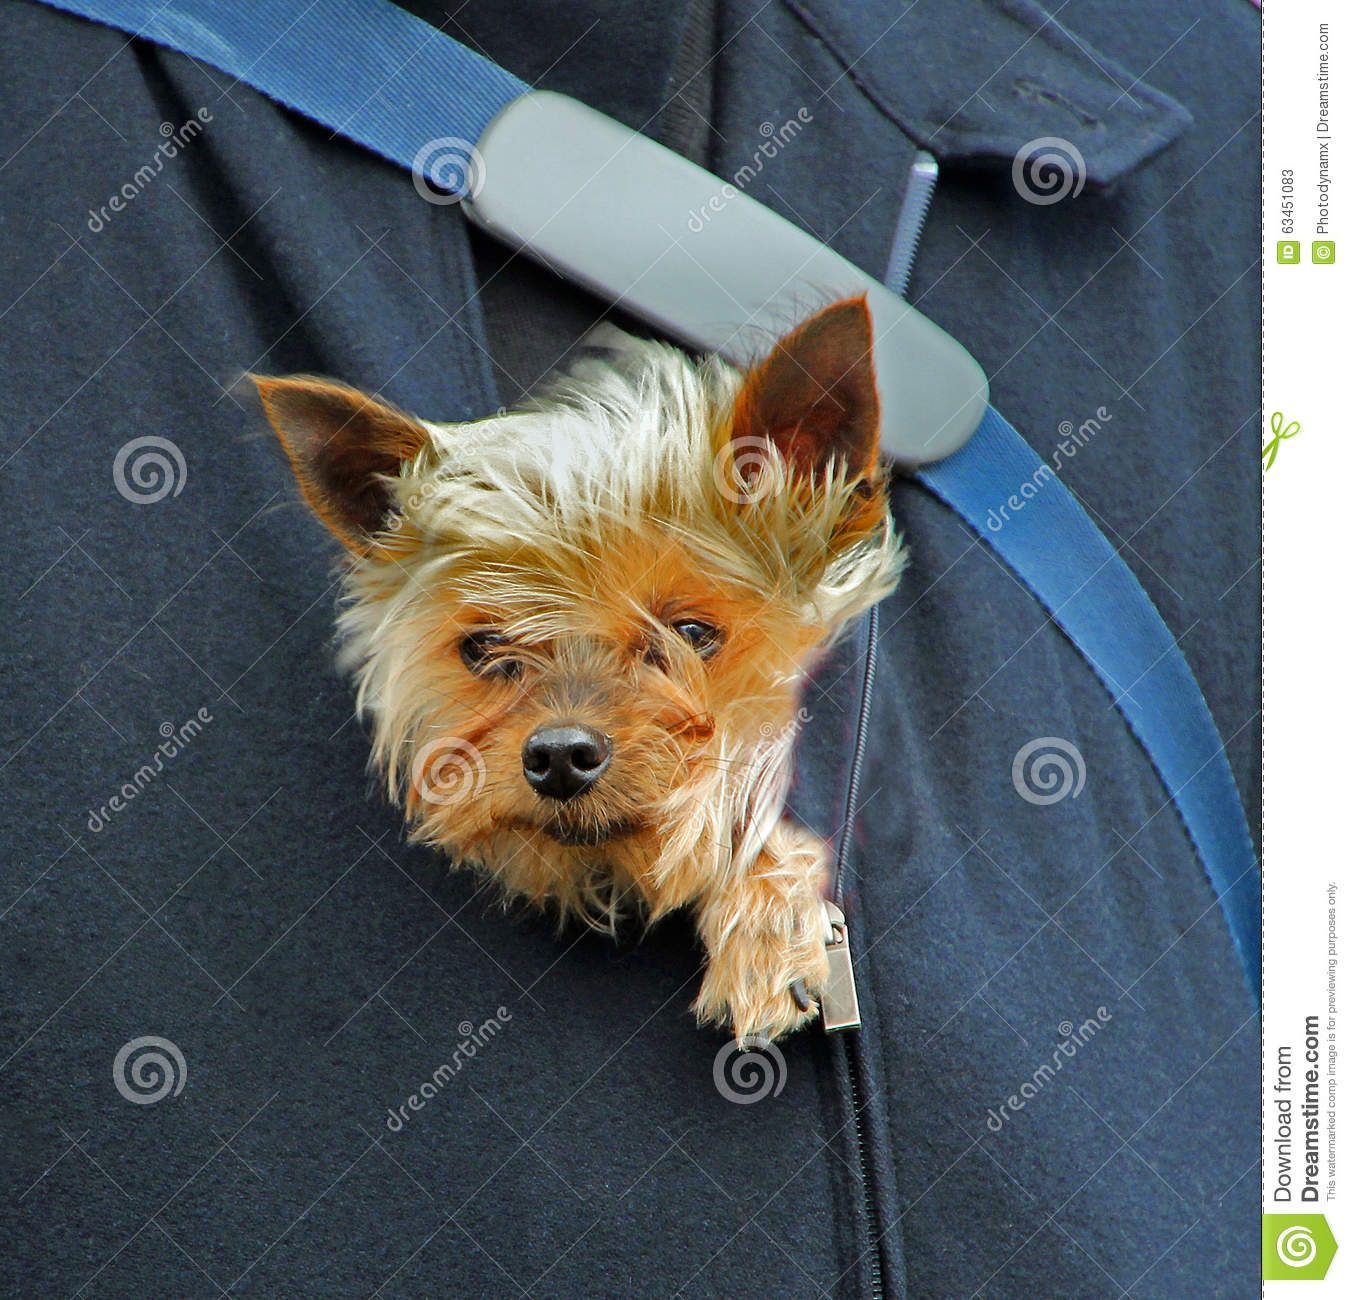 Puppy Protection Stock Photo Image 63451083